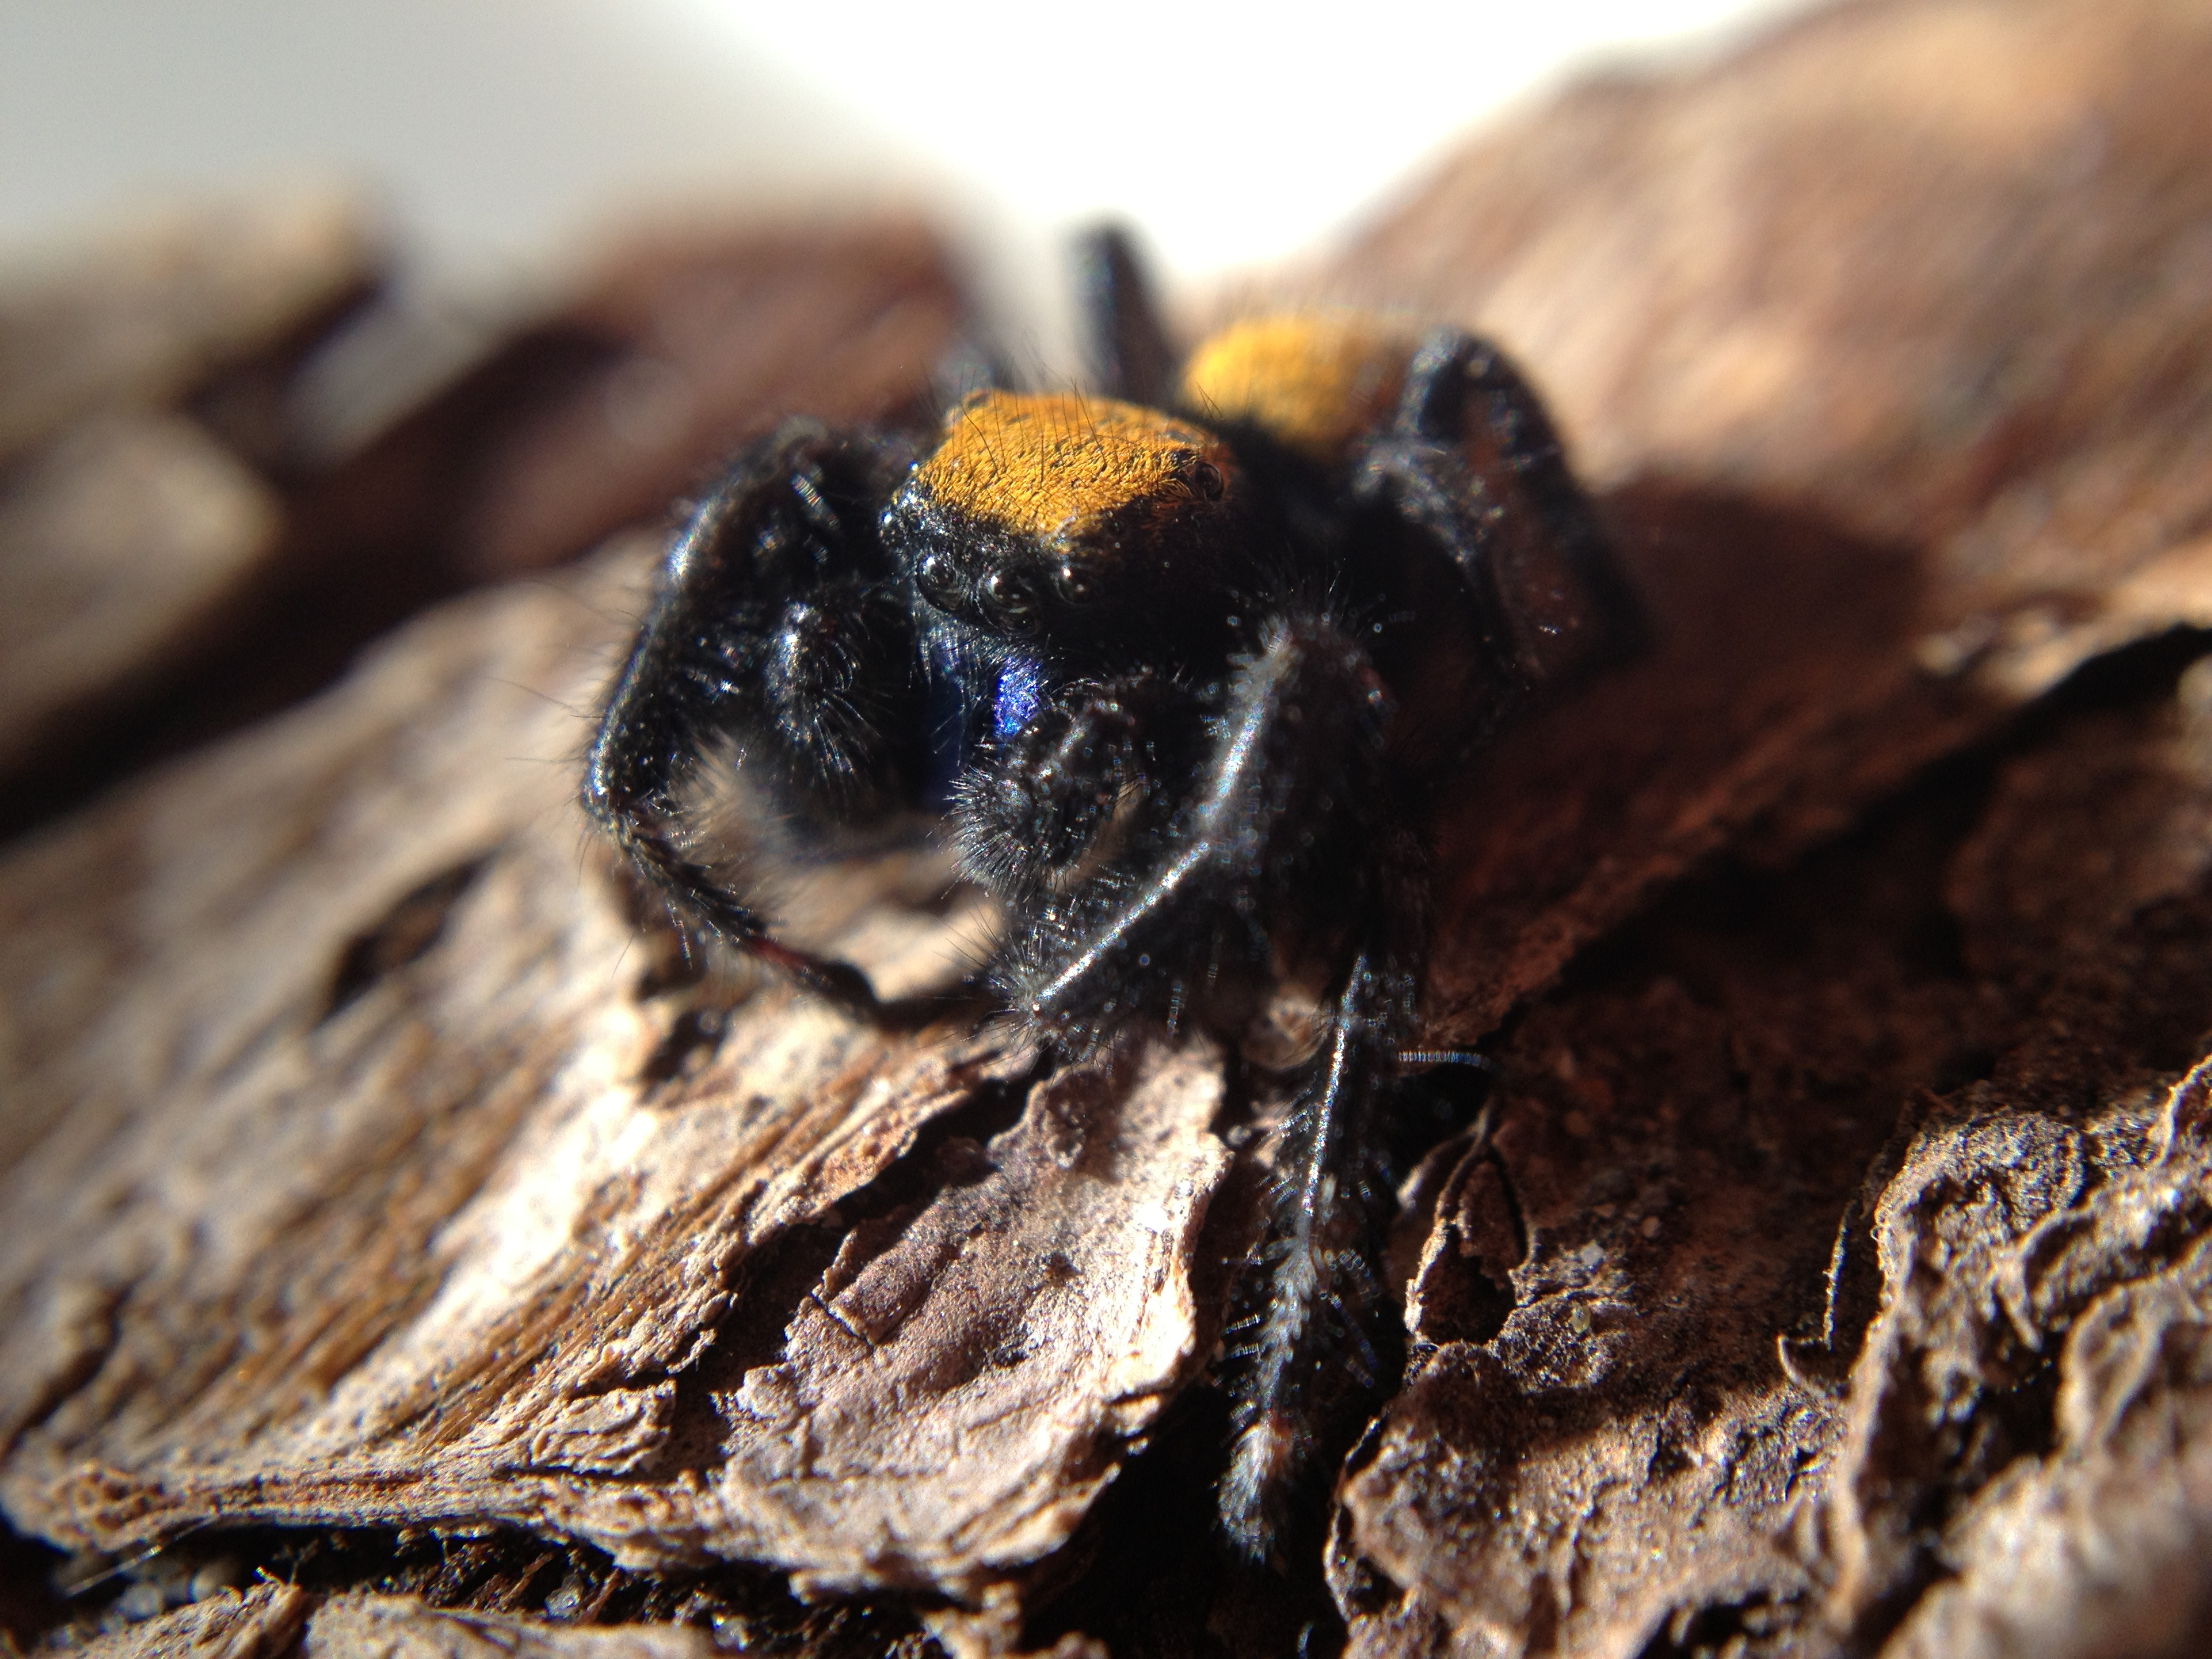 Jumping spider velvet ant mimic